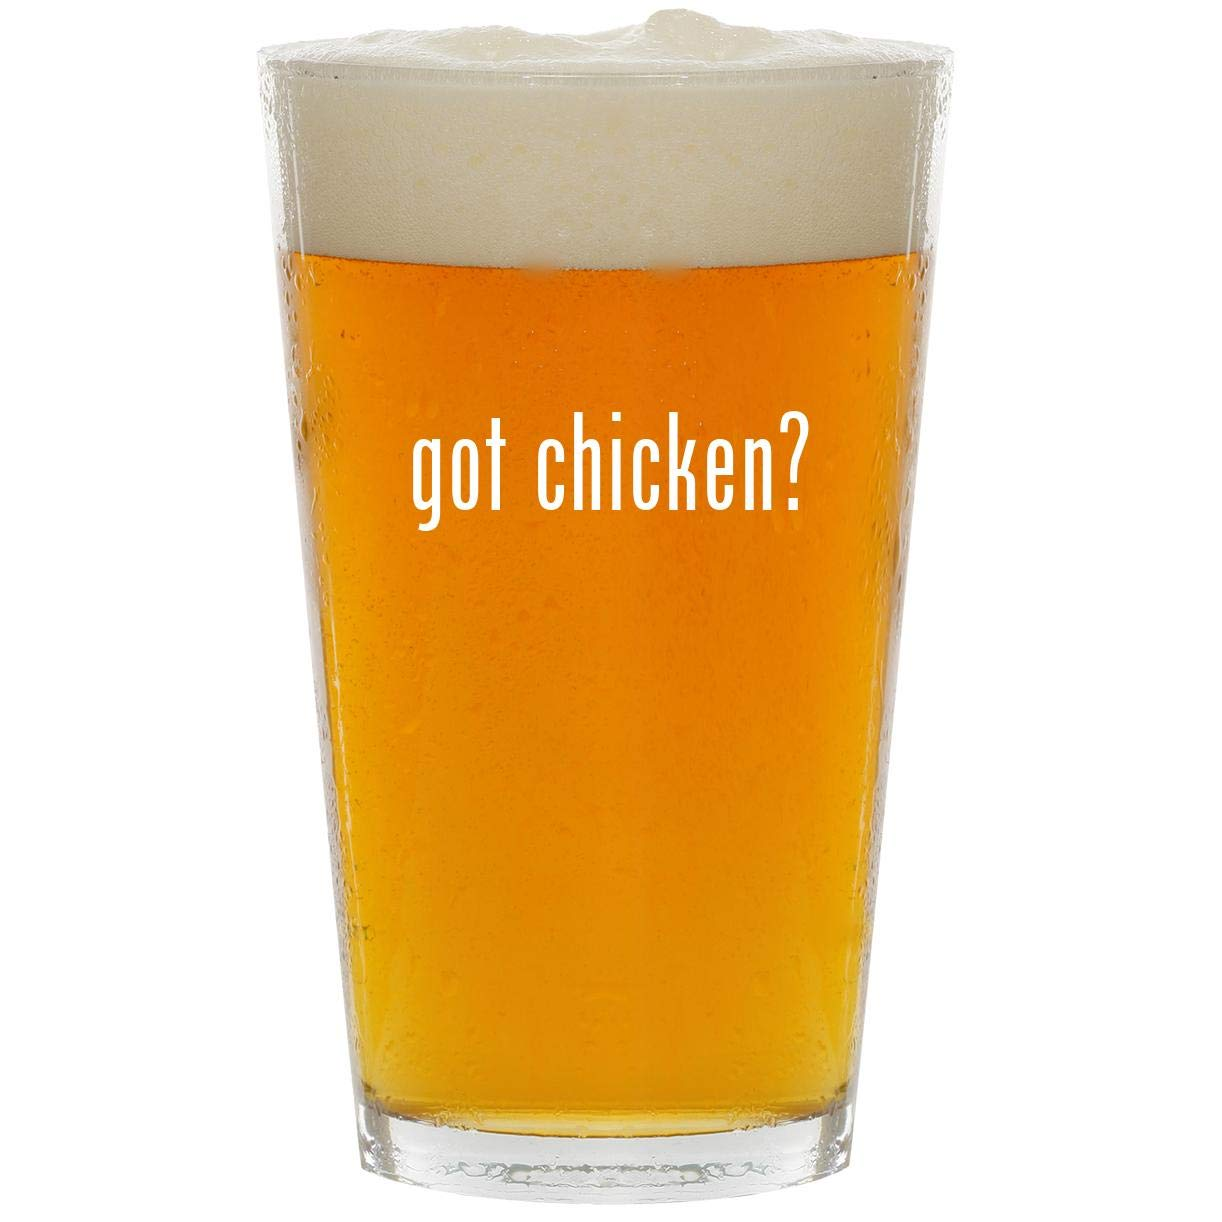 got chicken? - Glass 16oz Beer Pint